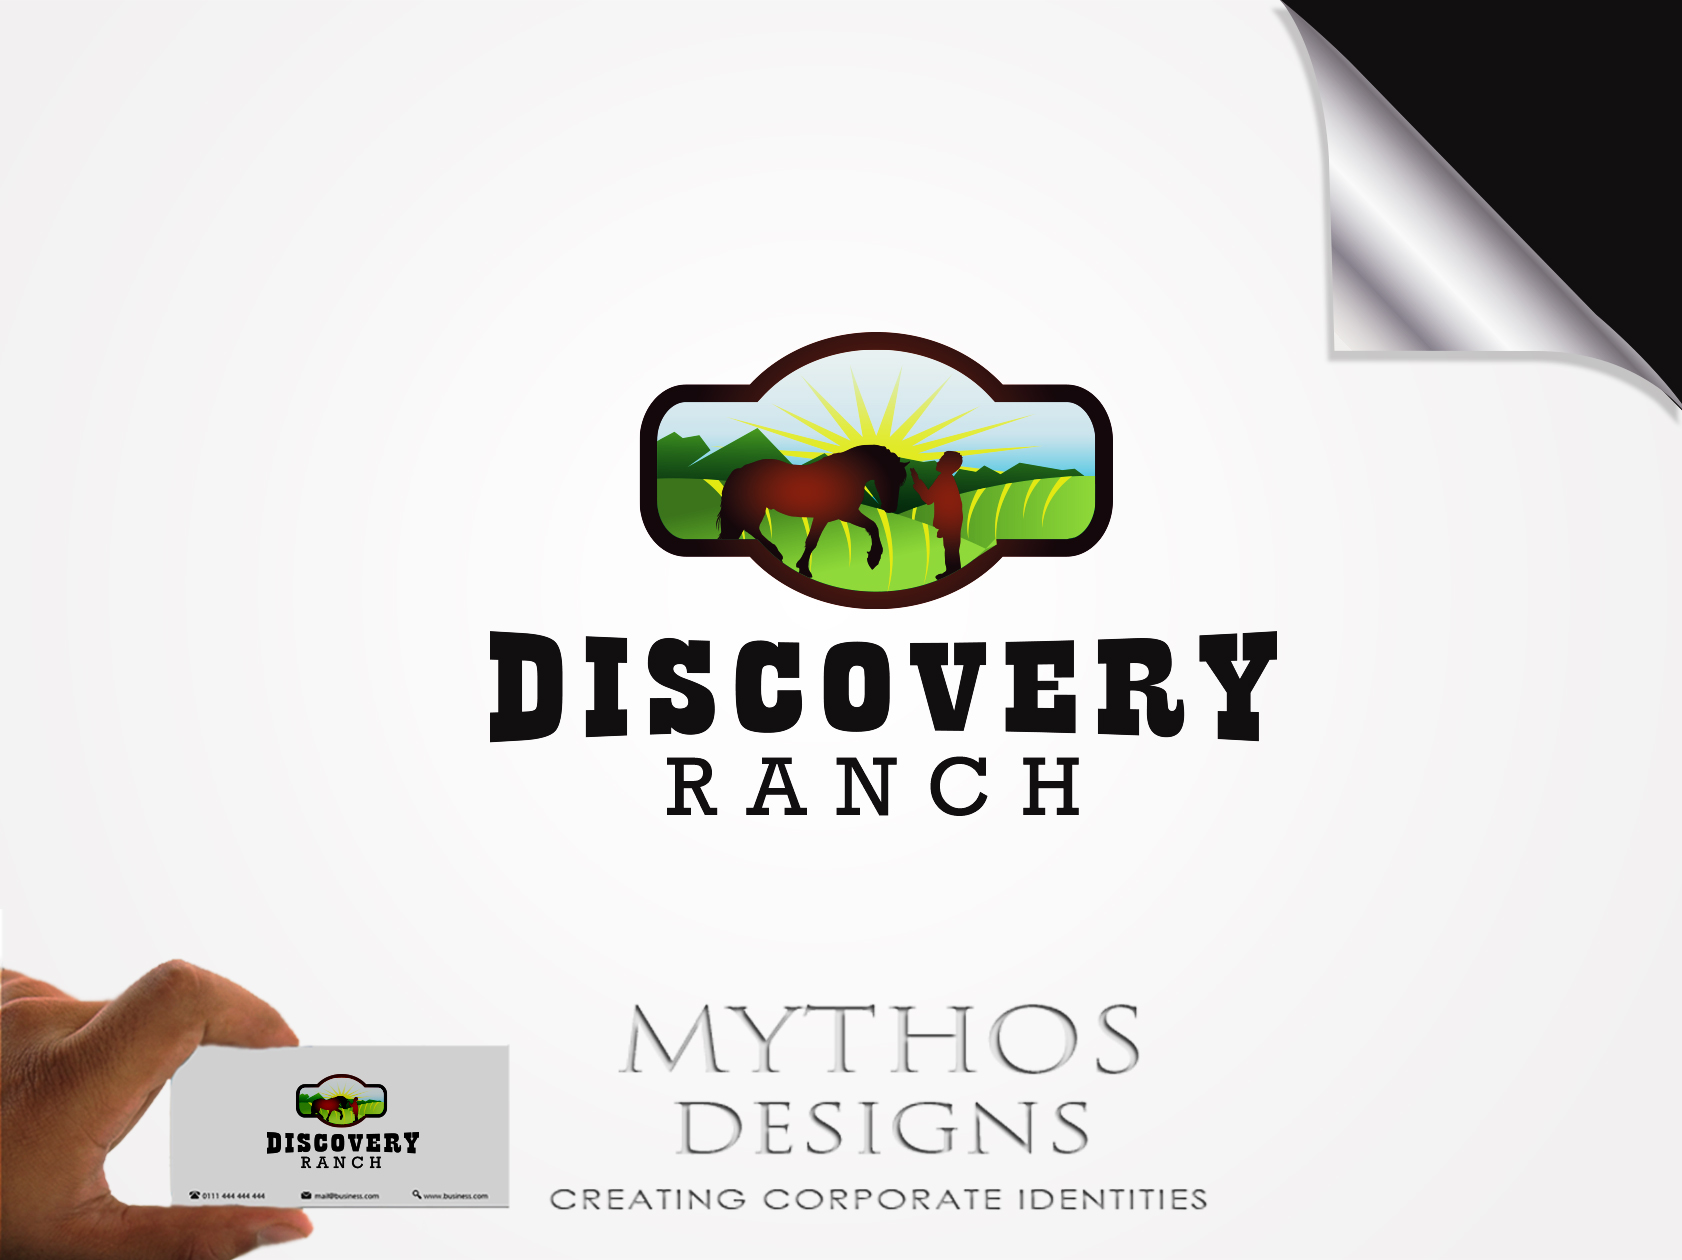 Logo Design by Mythos Designs - Entry No. 97 in the Logo Design Contest Creative Logo Design for Discovery Ranch.